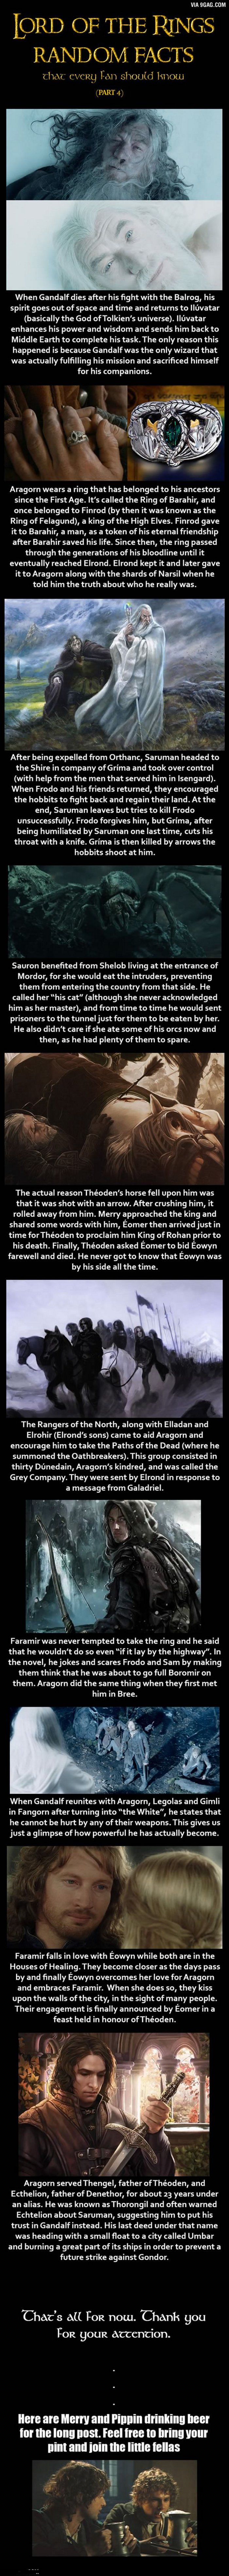 Lord of the Rings Random Facts (Part 4)